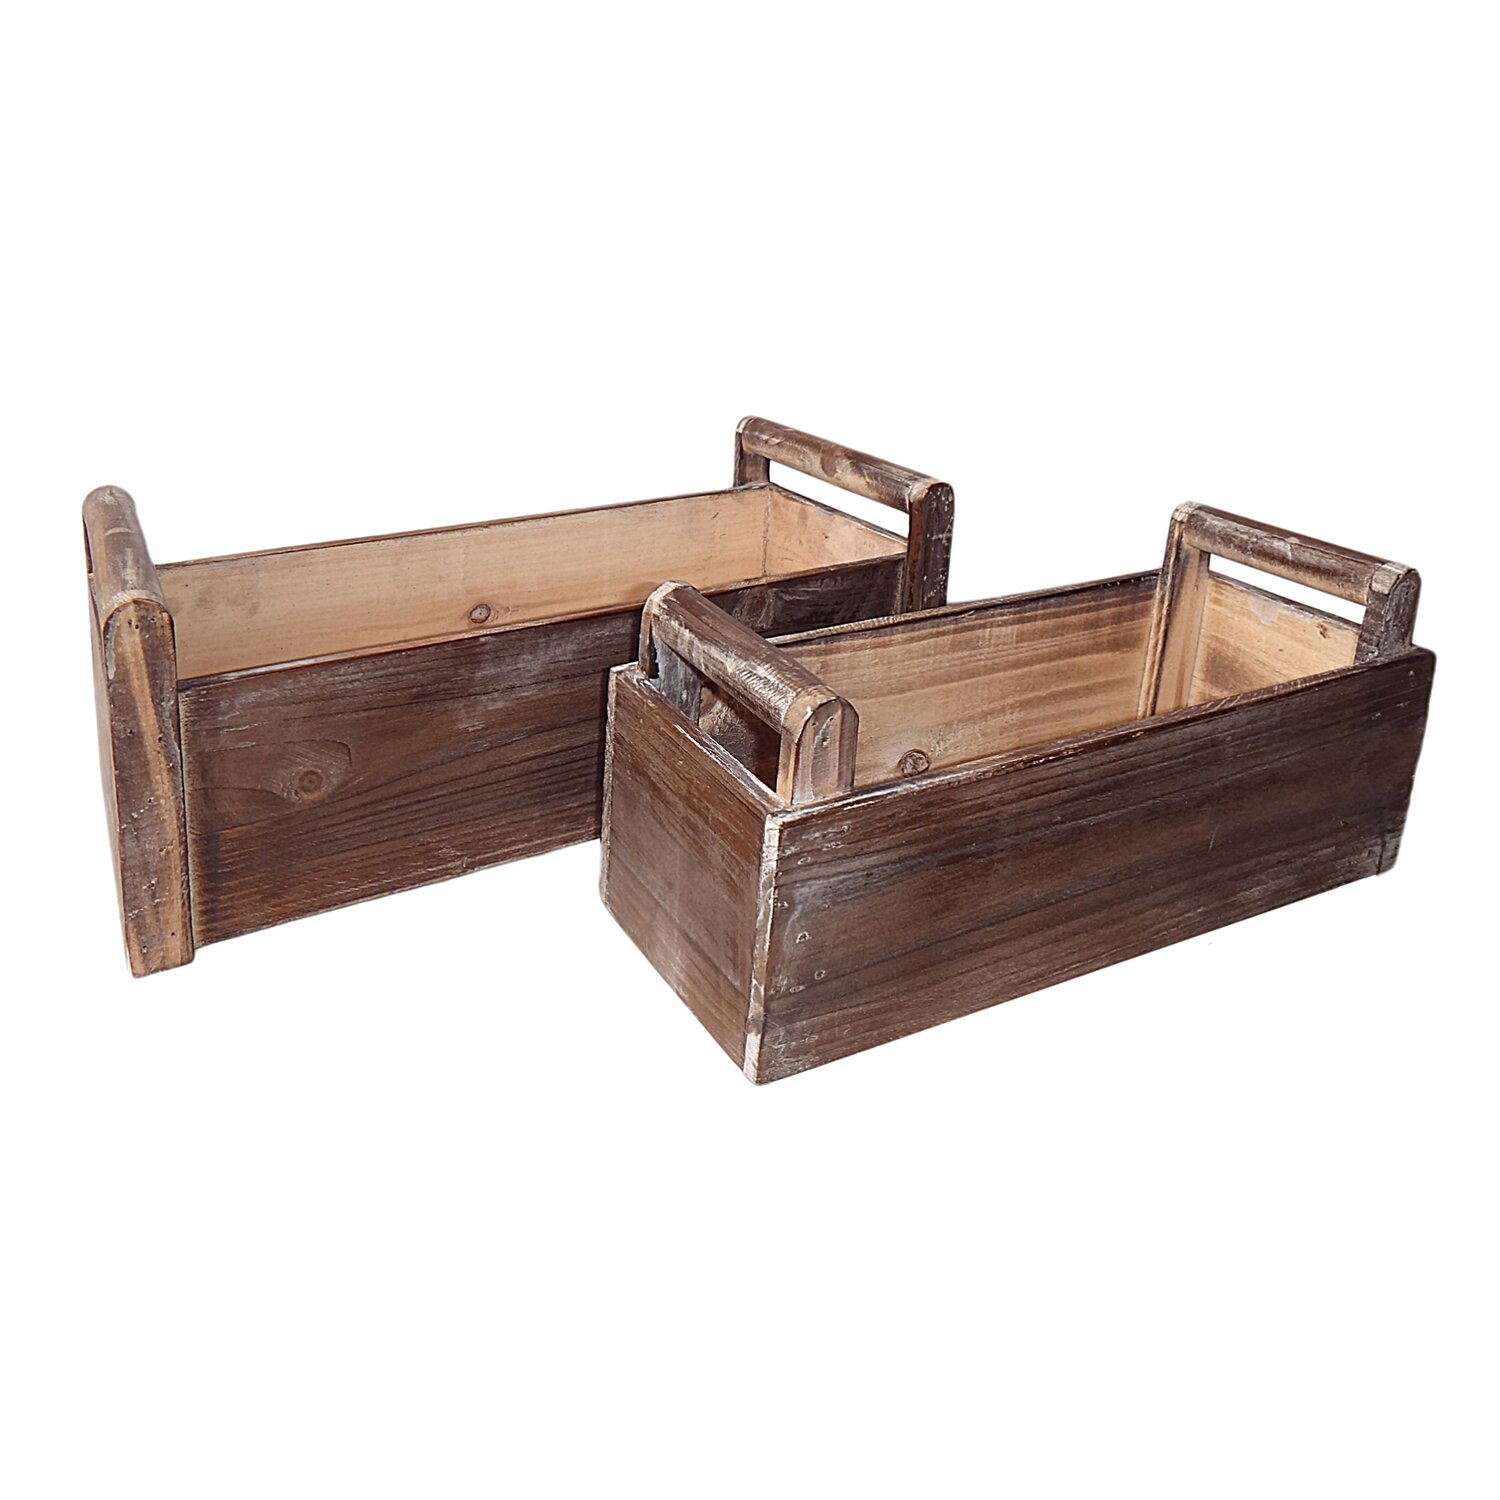 Cheungs Rectangular Ledge Planter